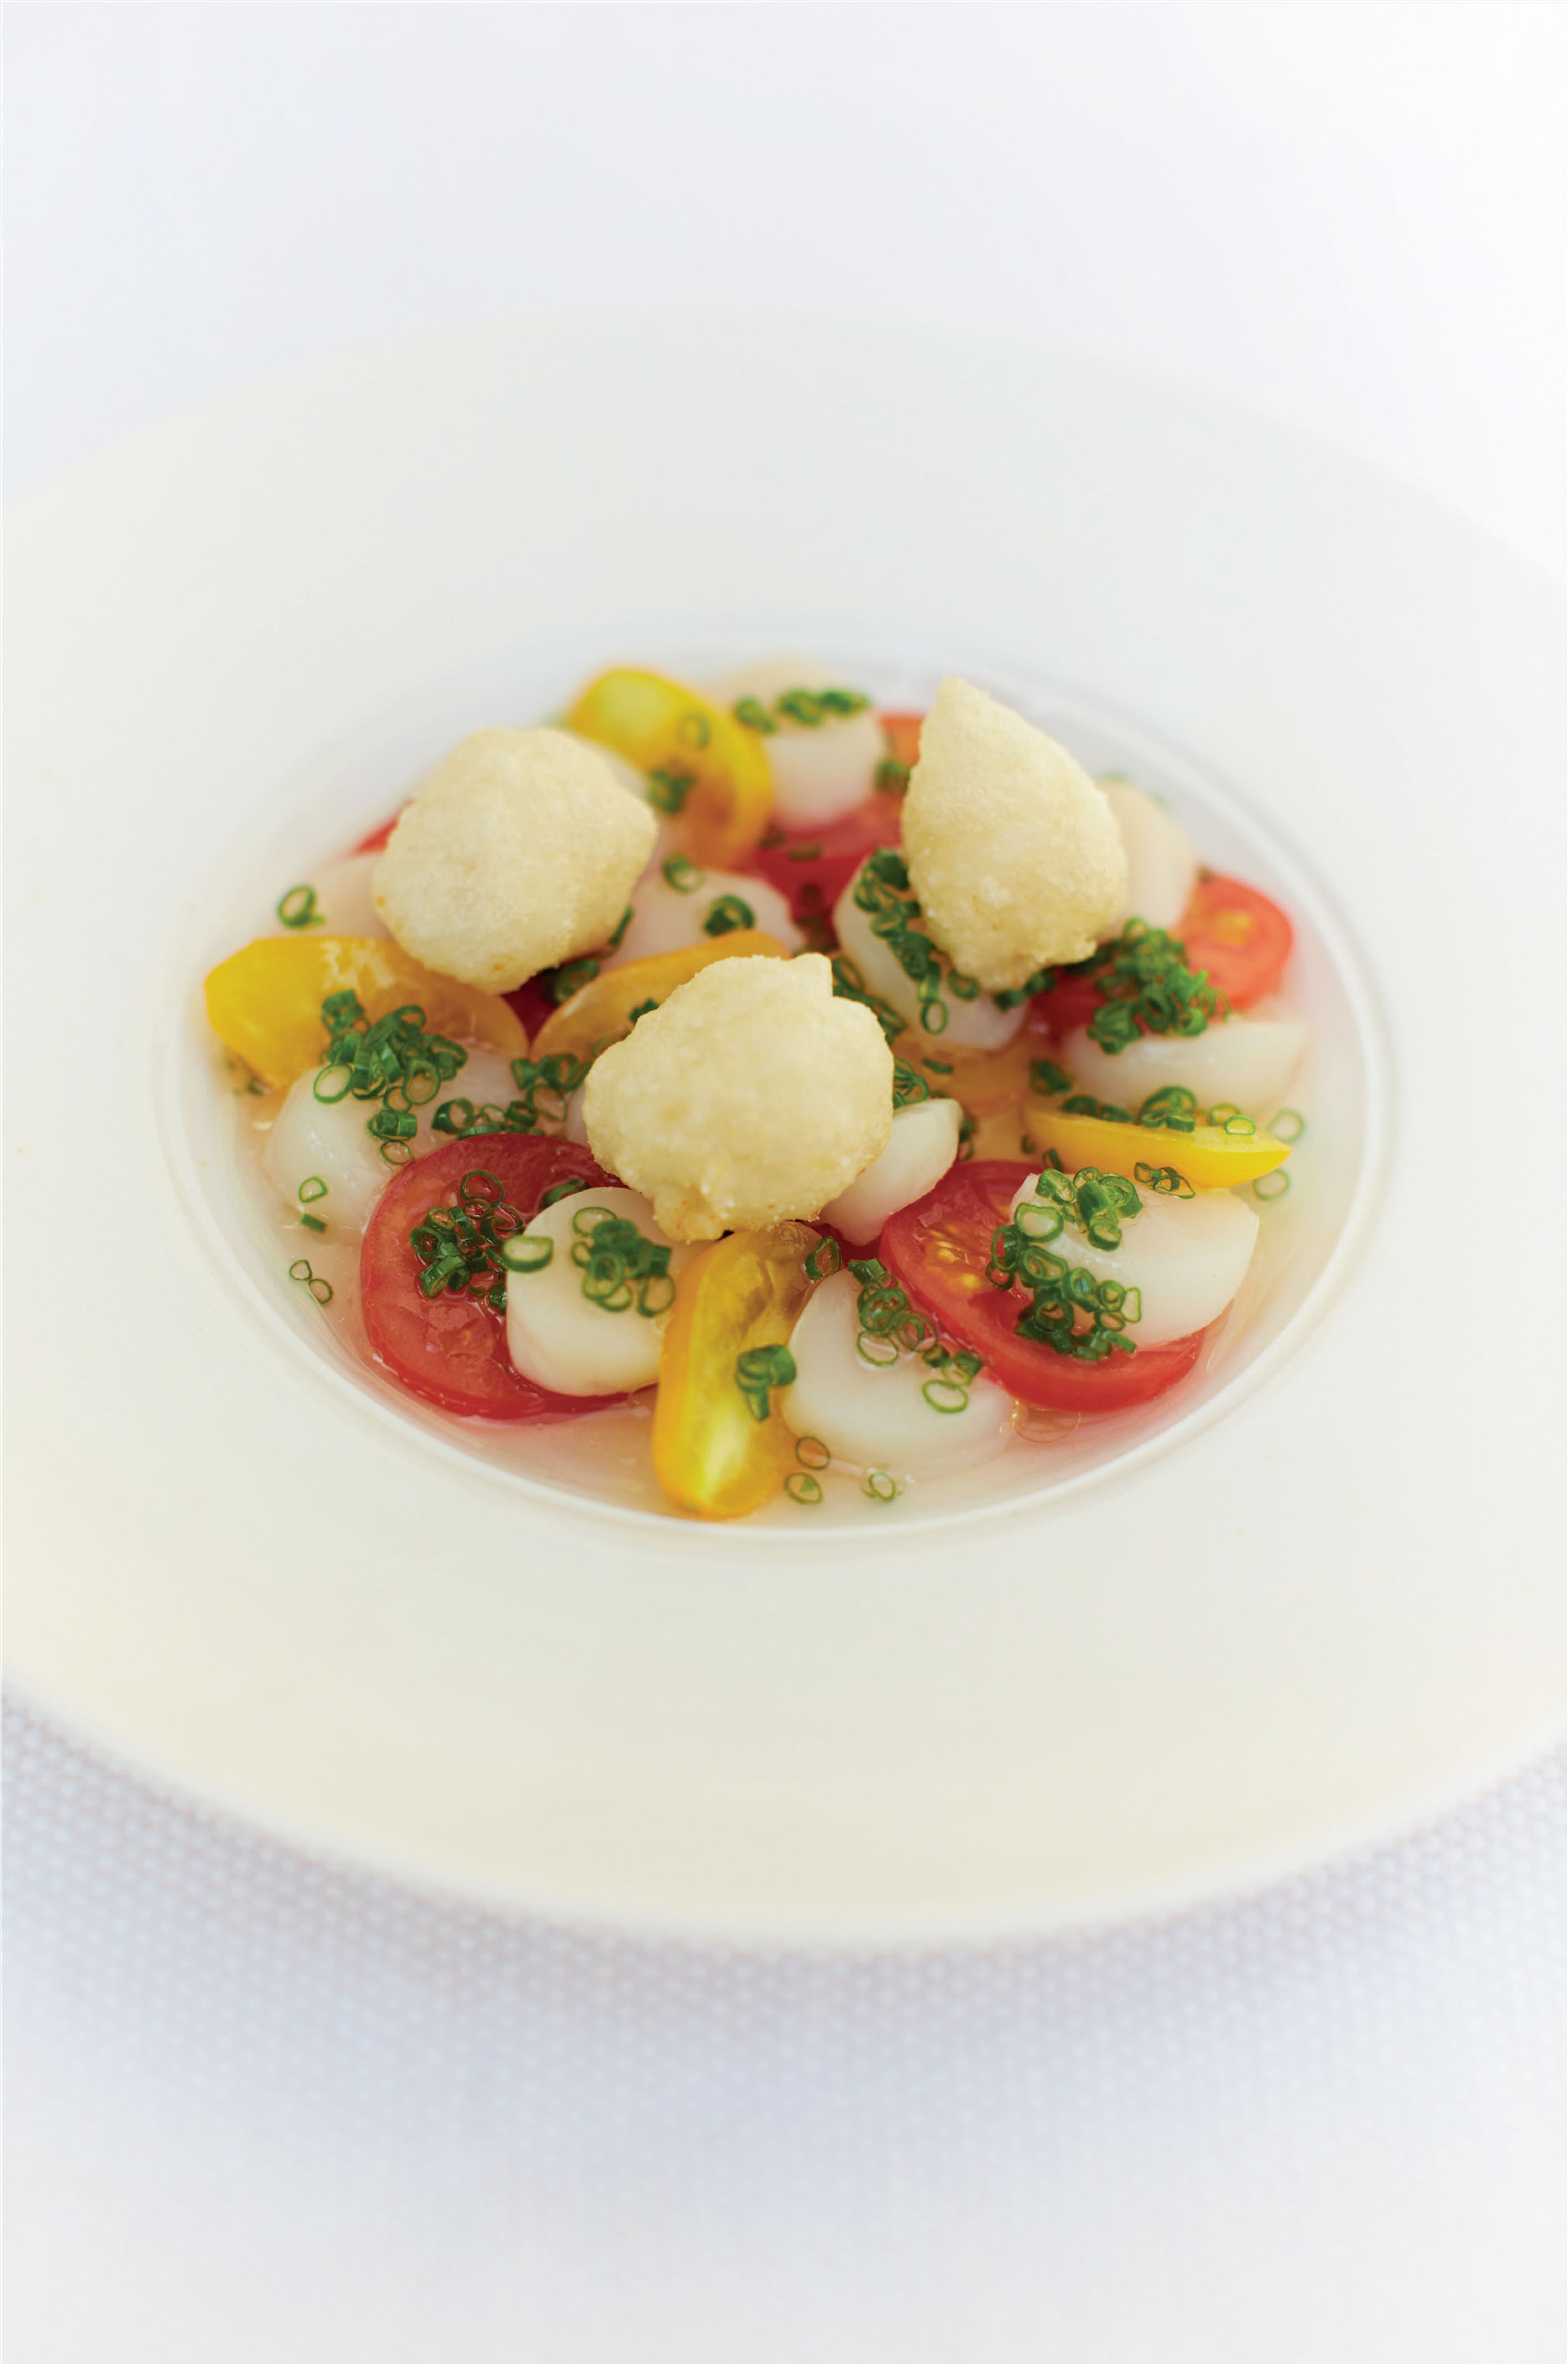 Raw queenie scallops, tomato water dressing and crisp-fried queenies